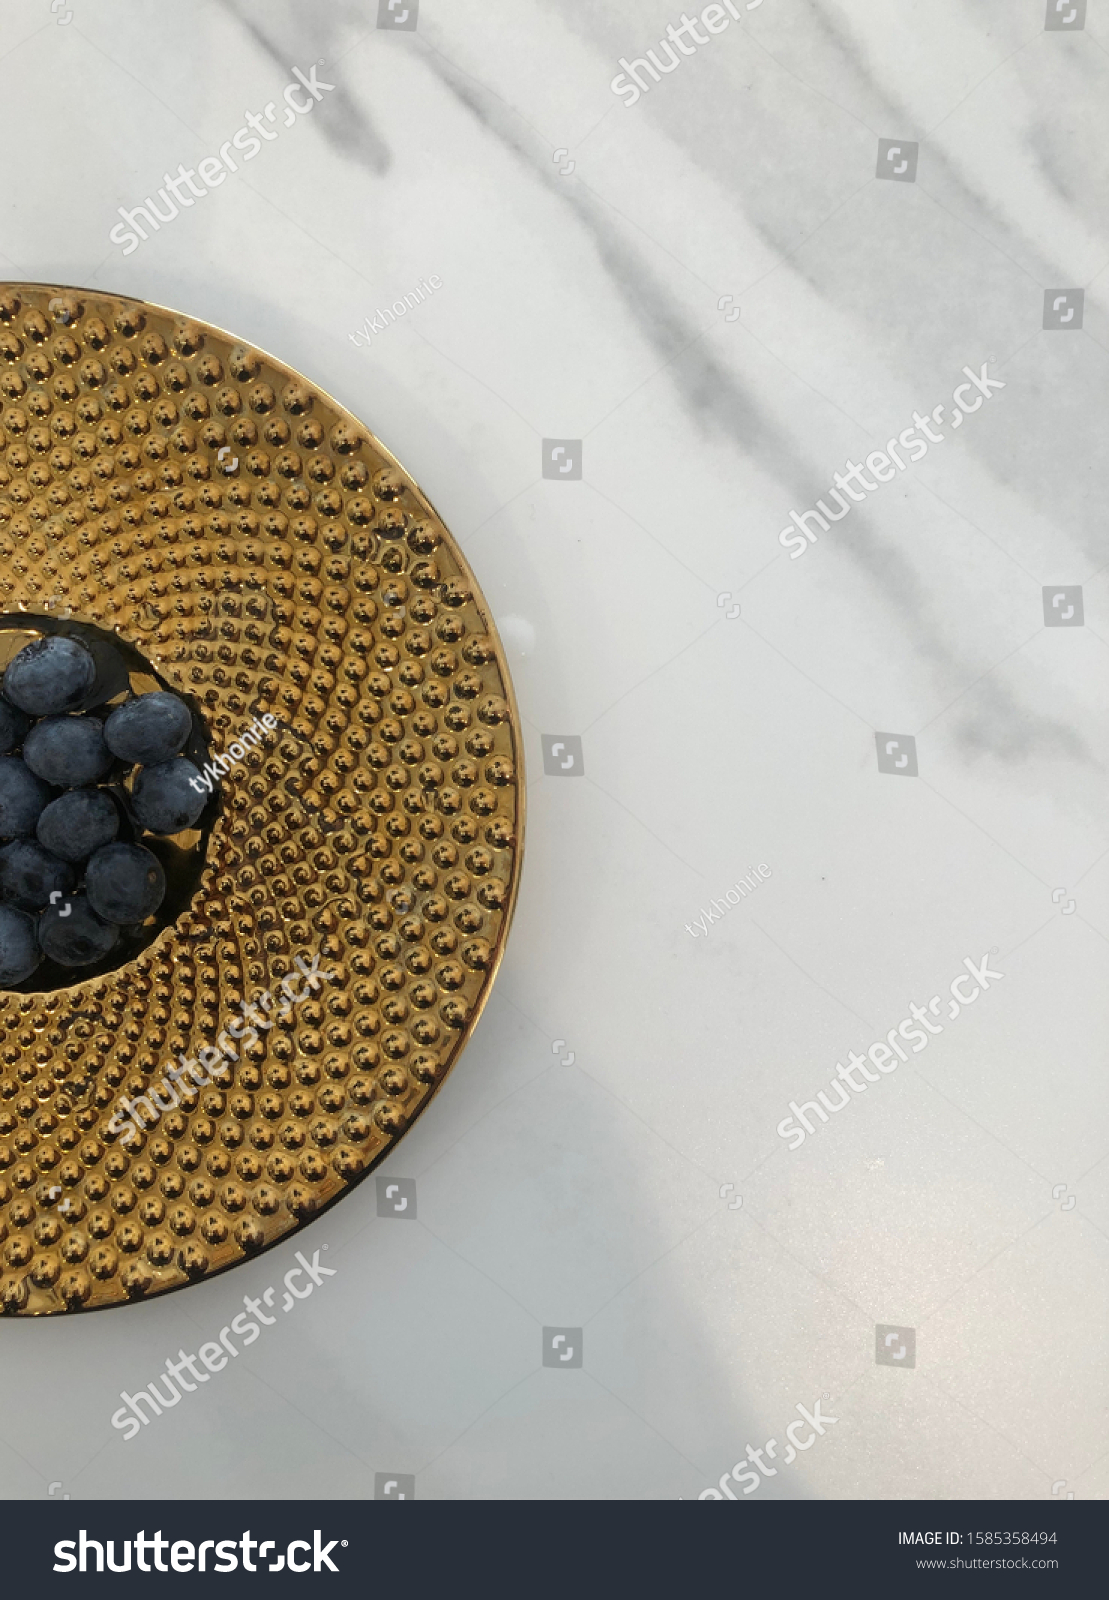 stock-photo-fresh-blueberries-on-a-golde